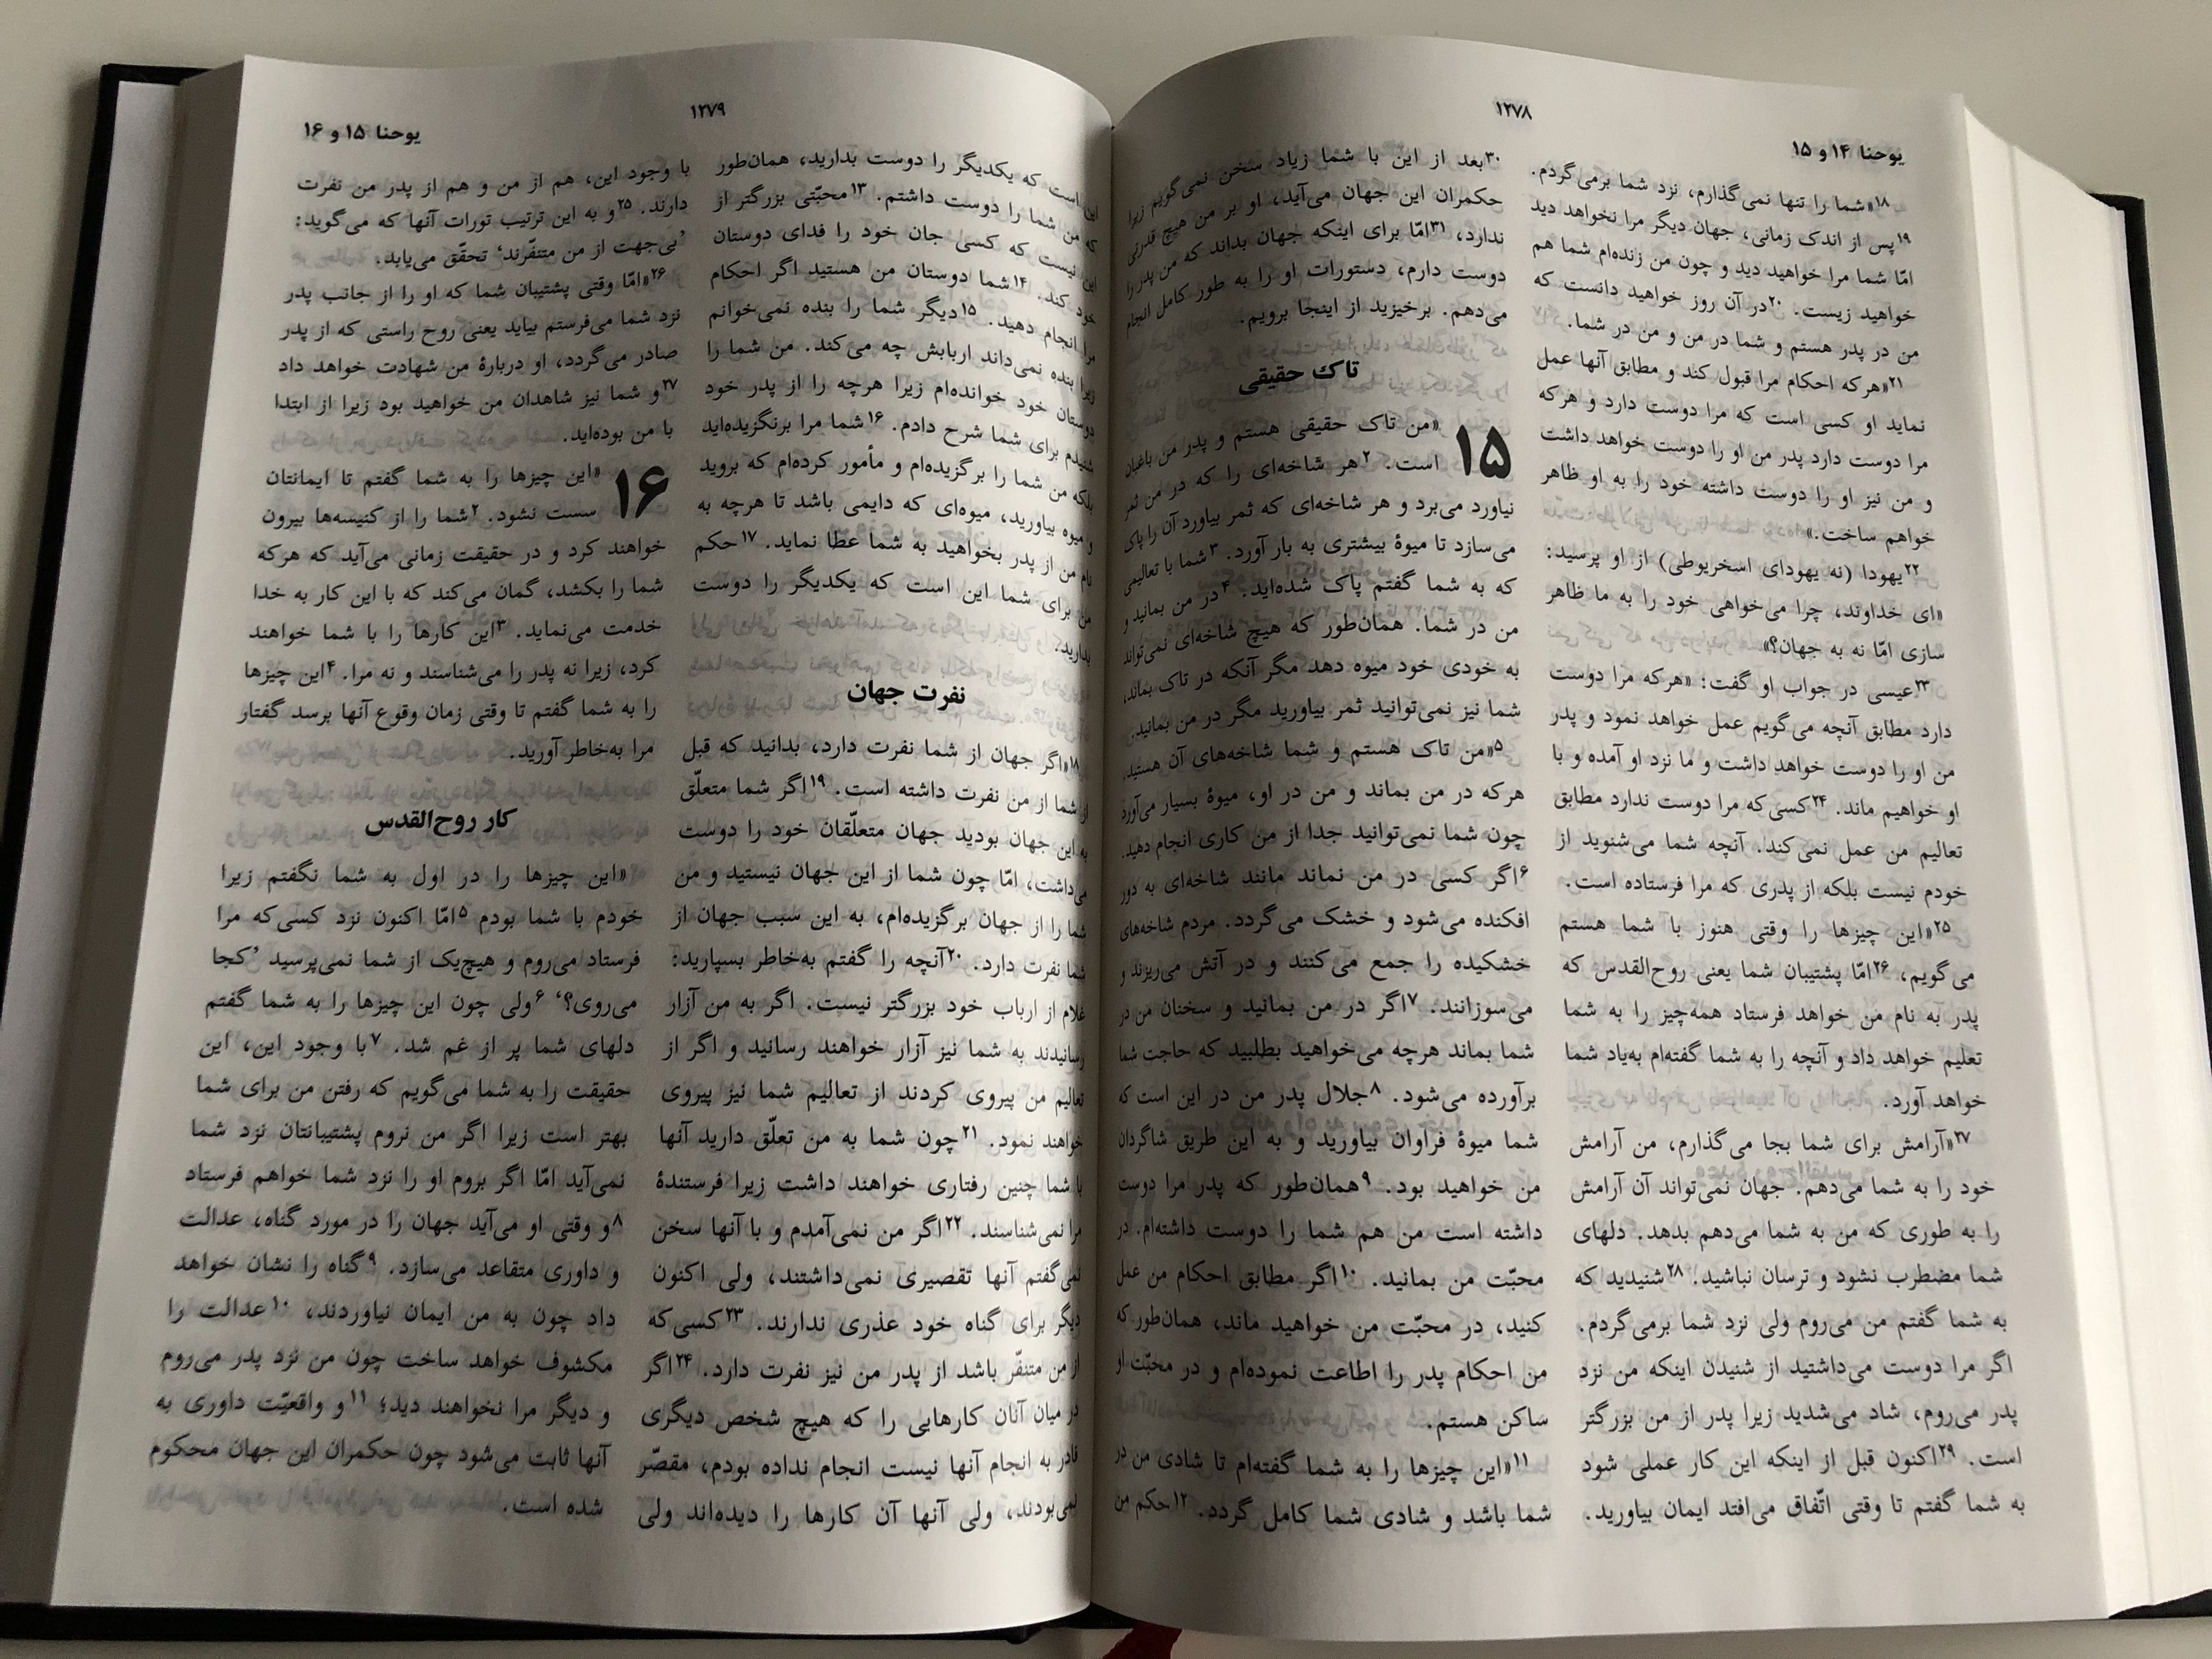 holy-bible-today-s-persian-version-farsi-united-bible-societies-2009-9-.jpg